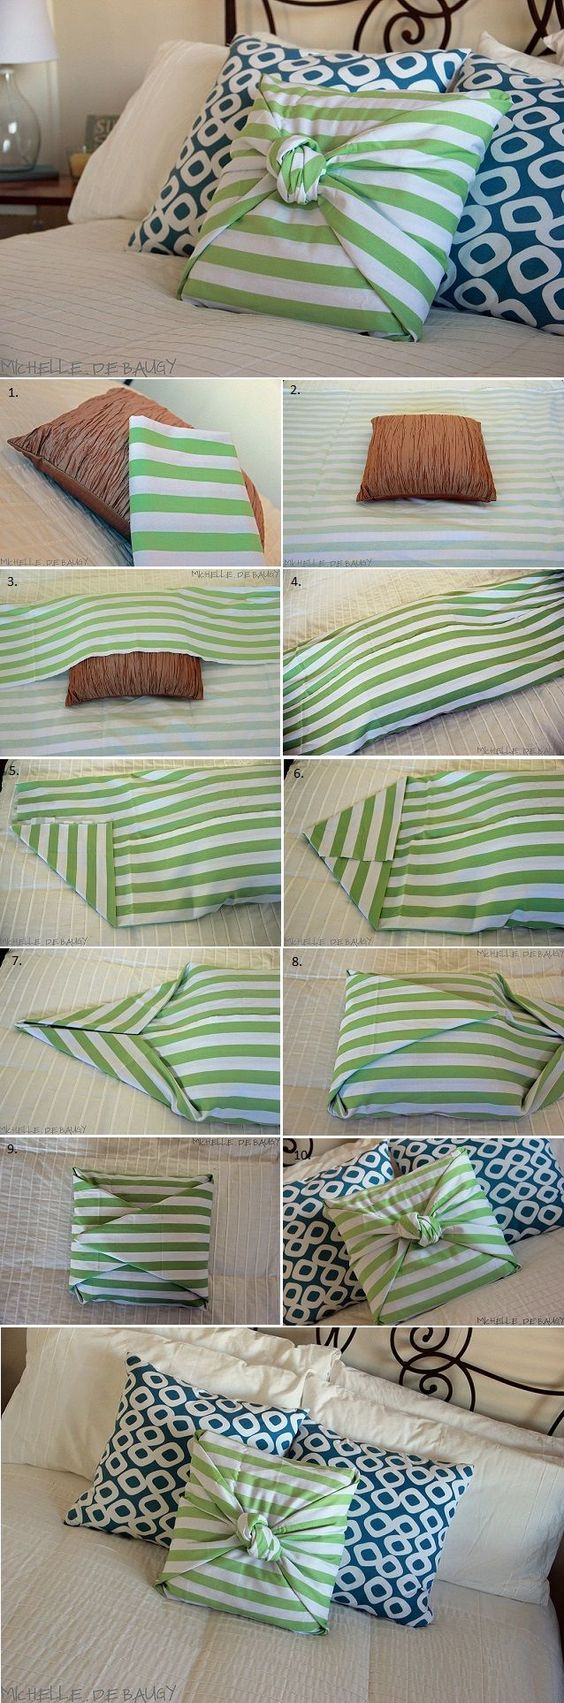 no sew pillow cover, doing this after I get my new slipcovers ...